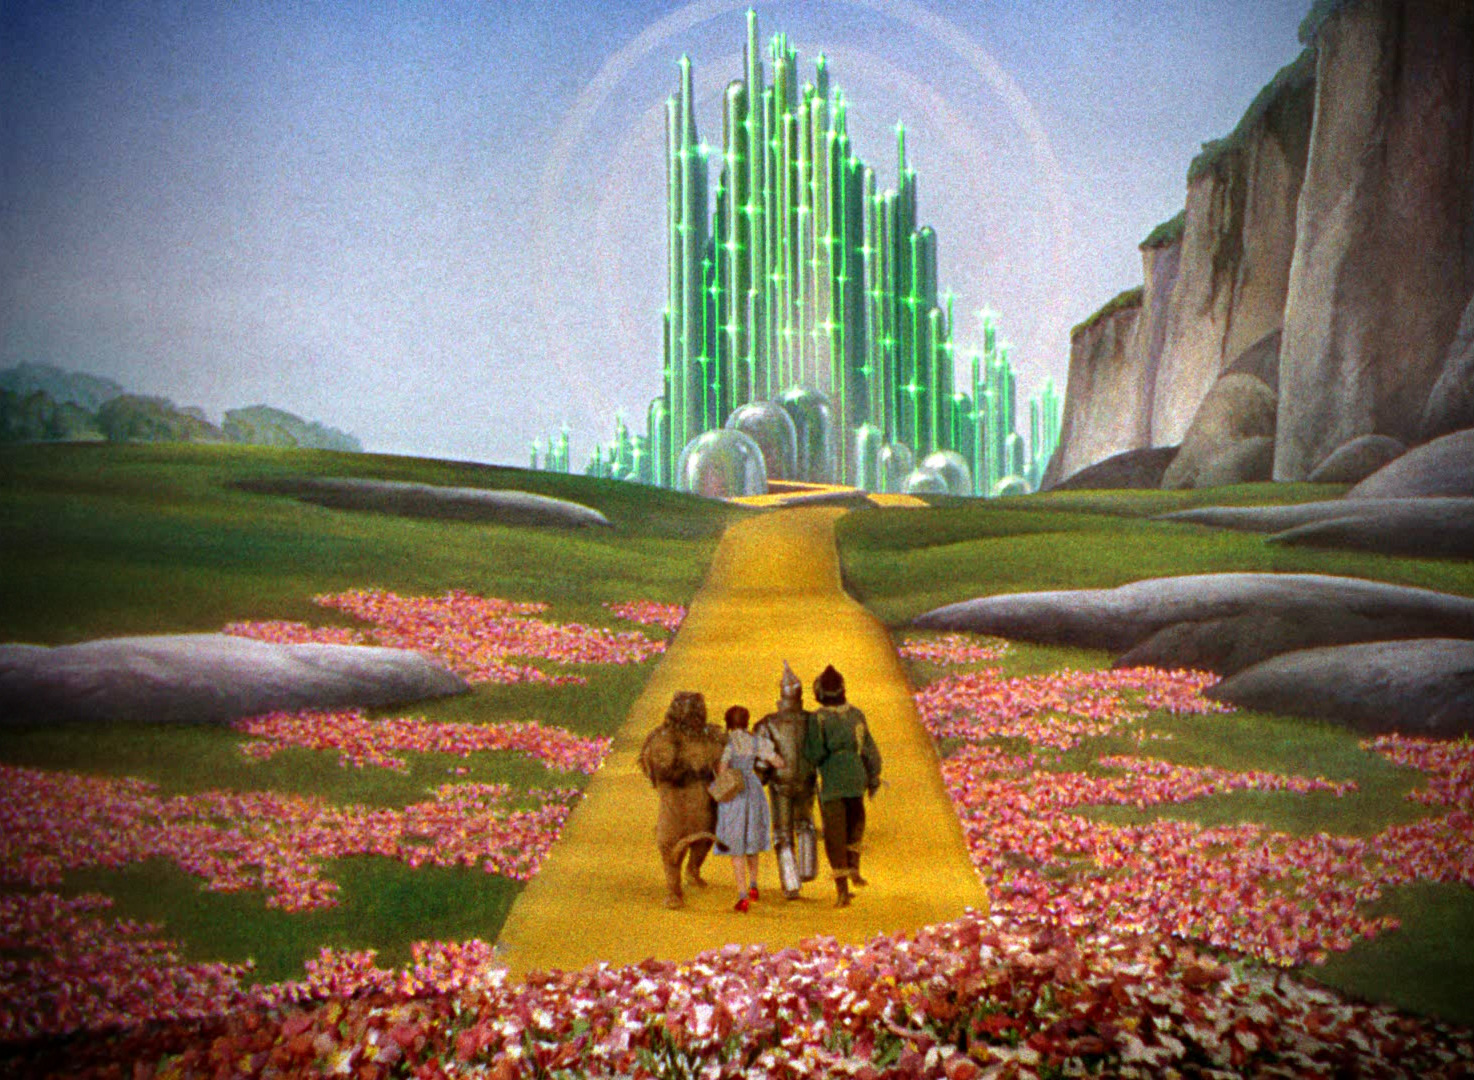 The Road To Oz in the Magic Kingdom